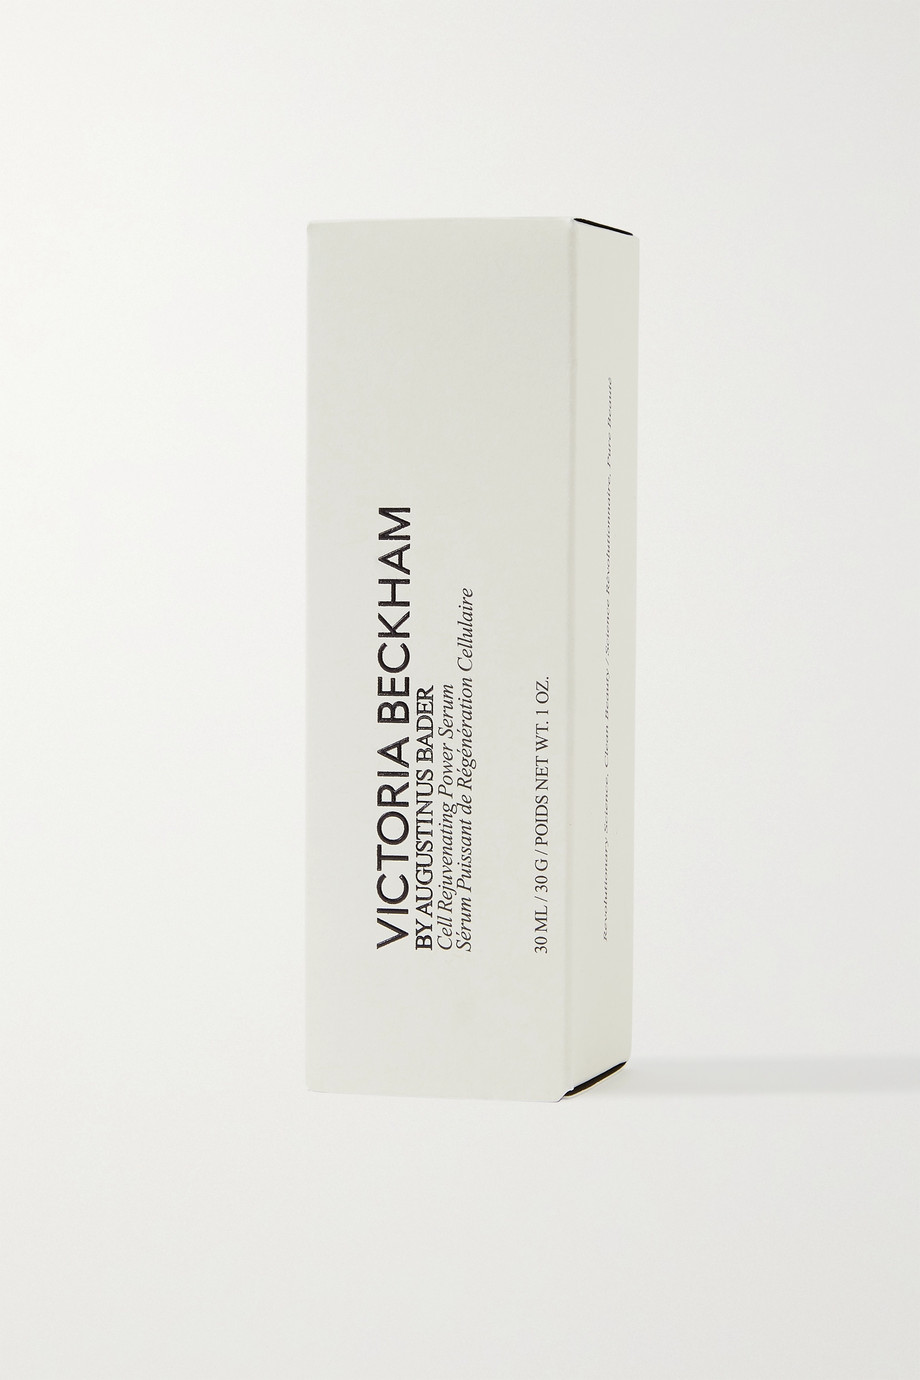 Victoria Beckham Beauty Victoria Beckham by Augustinus Bader Cell Rejuvenating Power Serum, 30ml